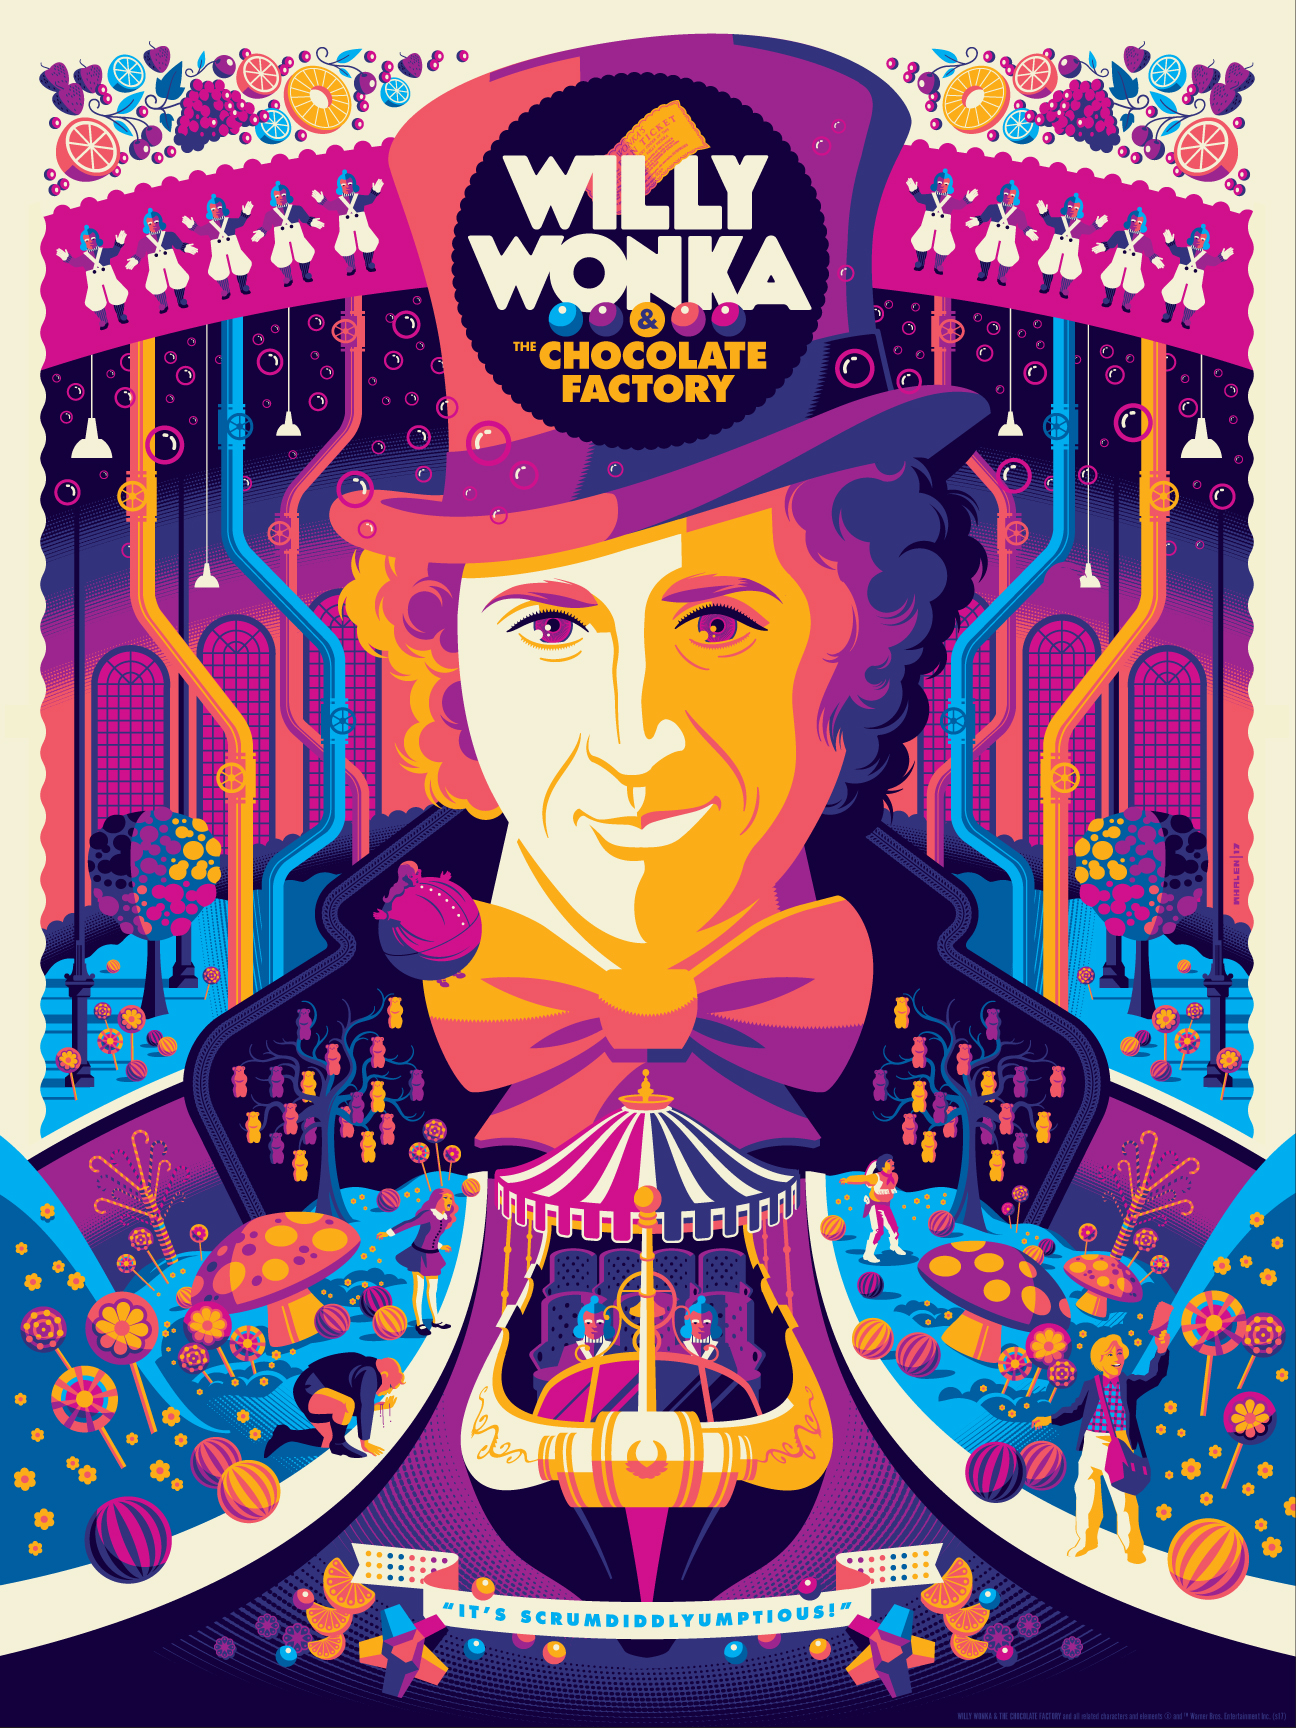 this-willy-wonka-and-the-chocolate-factory-poster-art-is-a-colorful-explosion-of-pure-imagination1